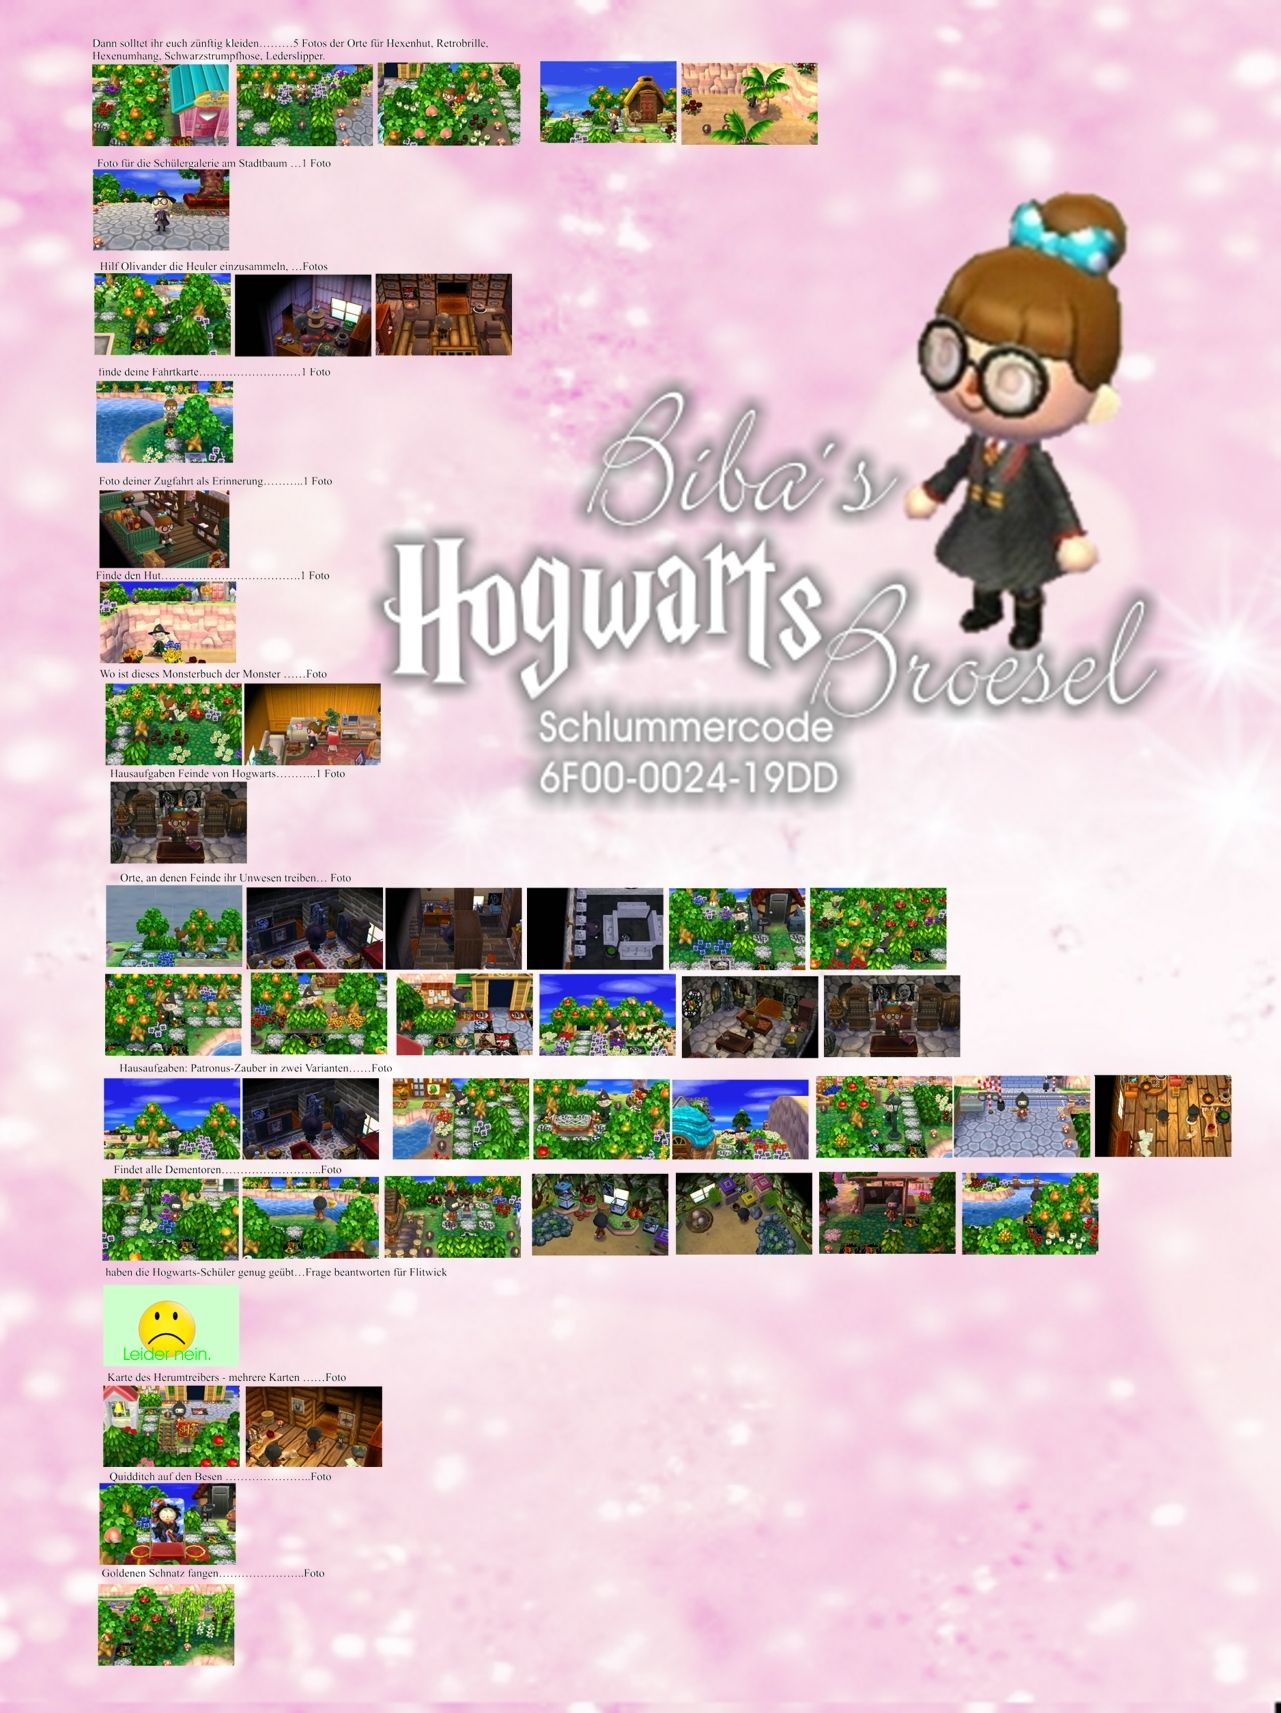 Losung Aufgaben Biba Broesel Spiel A Letter From Hogwarts Harry Potter Animal Crossing New Leaf Animal Crossing Animal Crossing Qr Best Gag Gifts